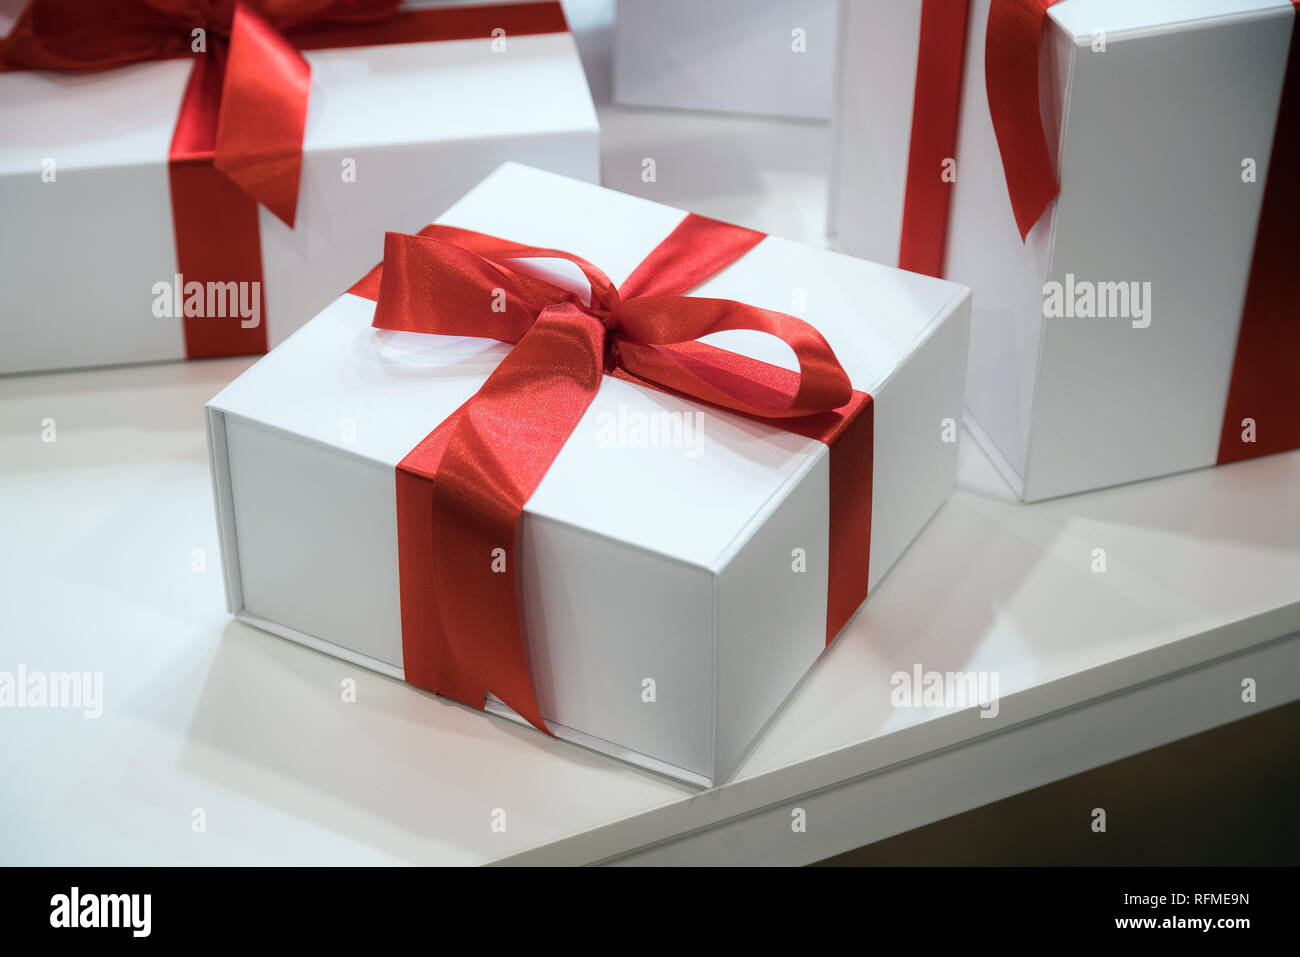 Christmas Or Birthday Time Gift Boxes With Red Ribbons On Wooden